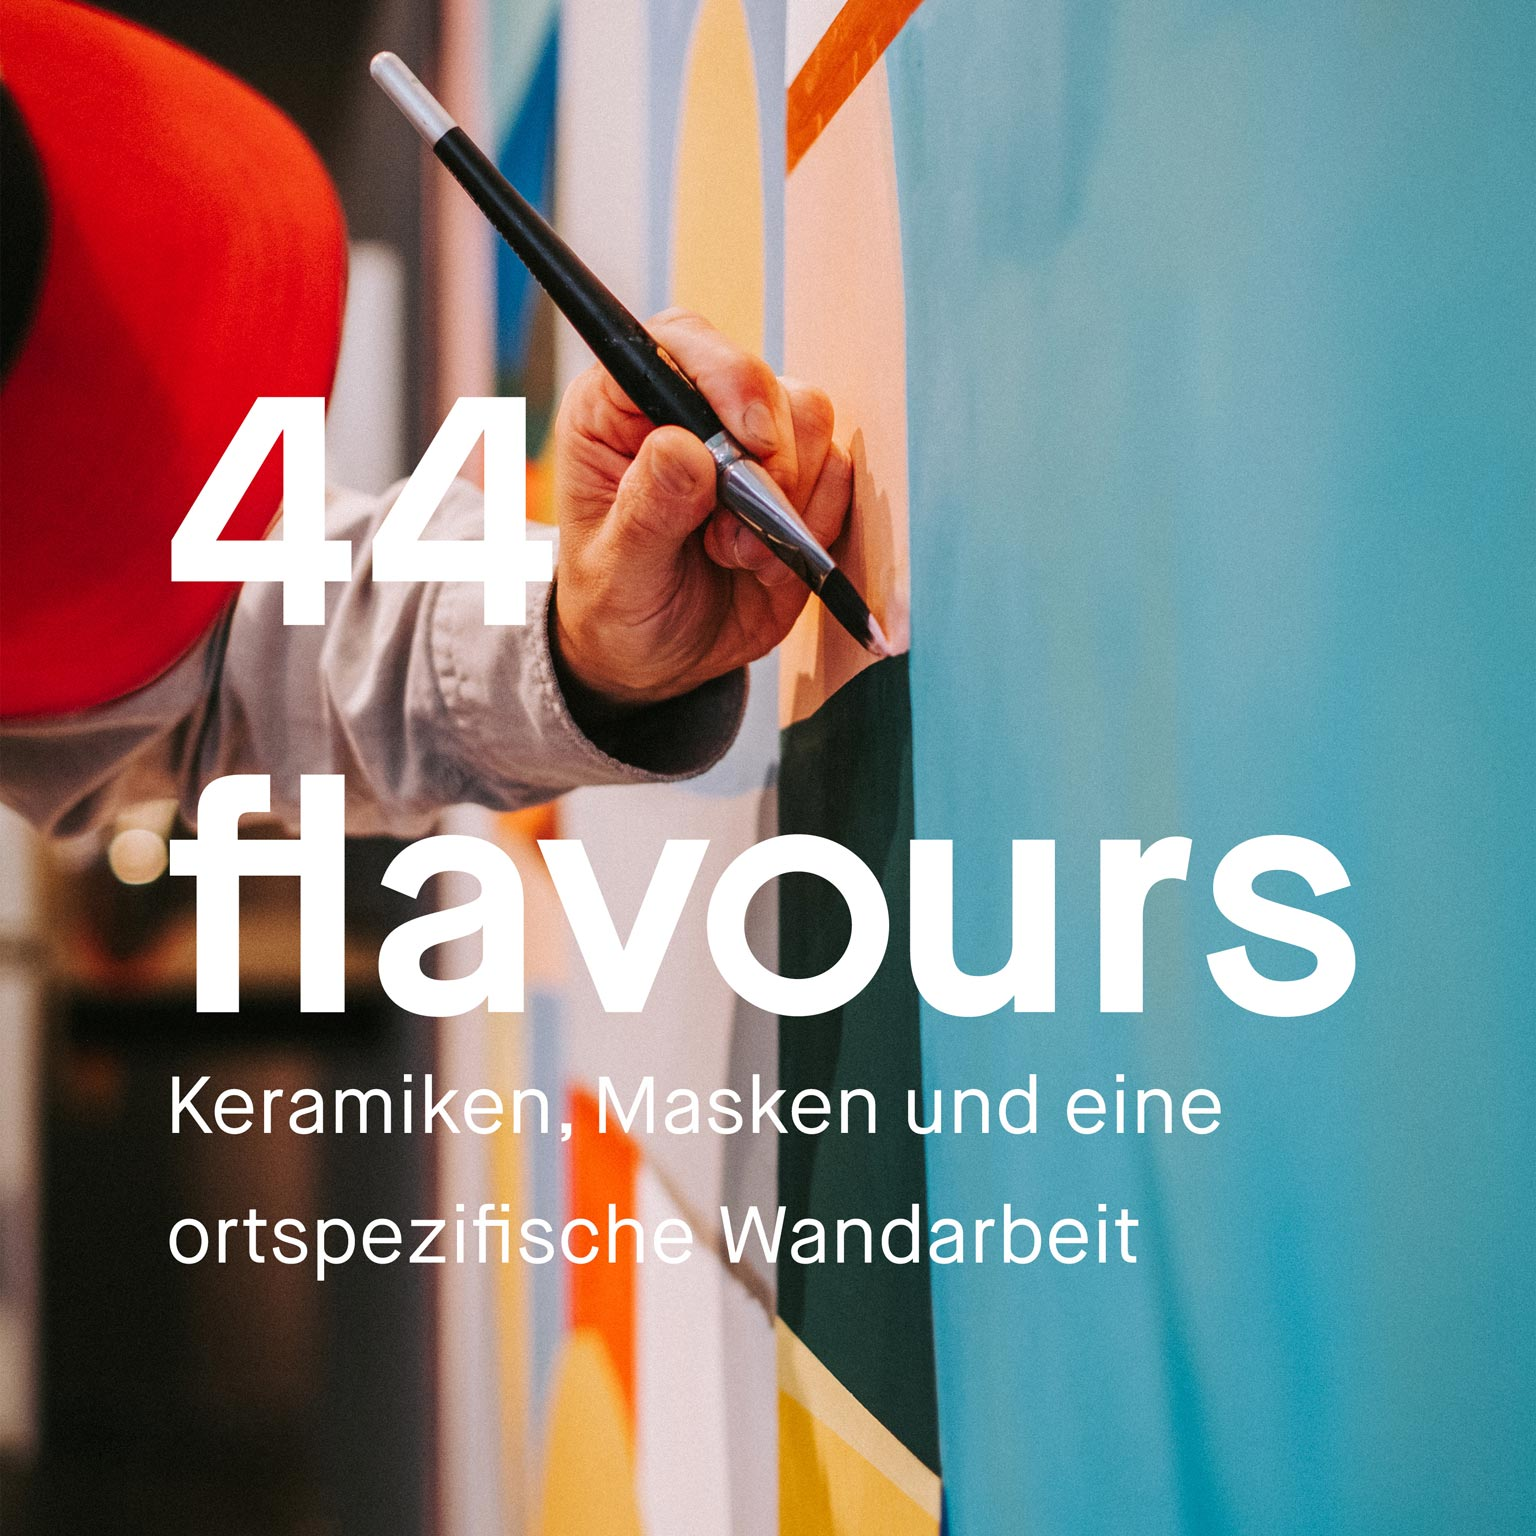 ew-banner-44flavours-mobil